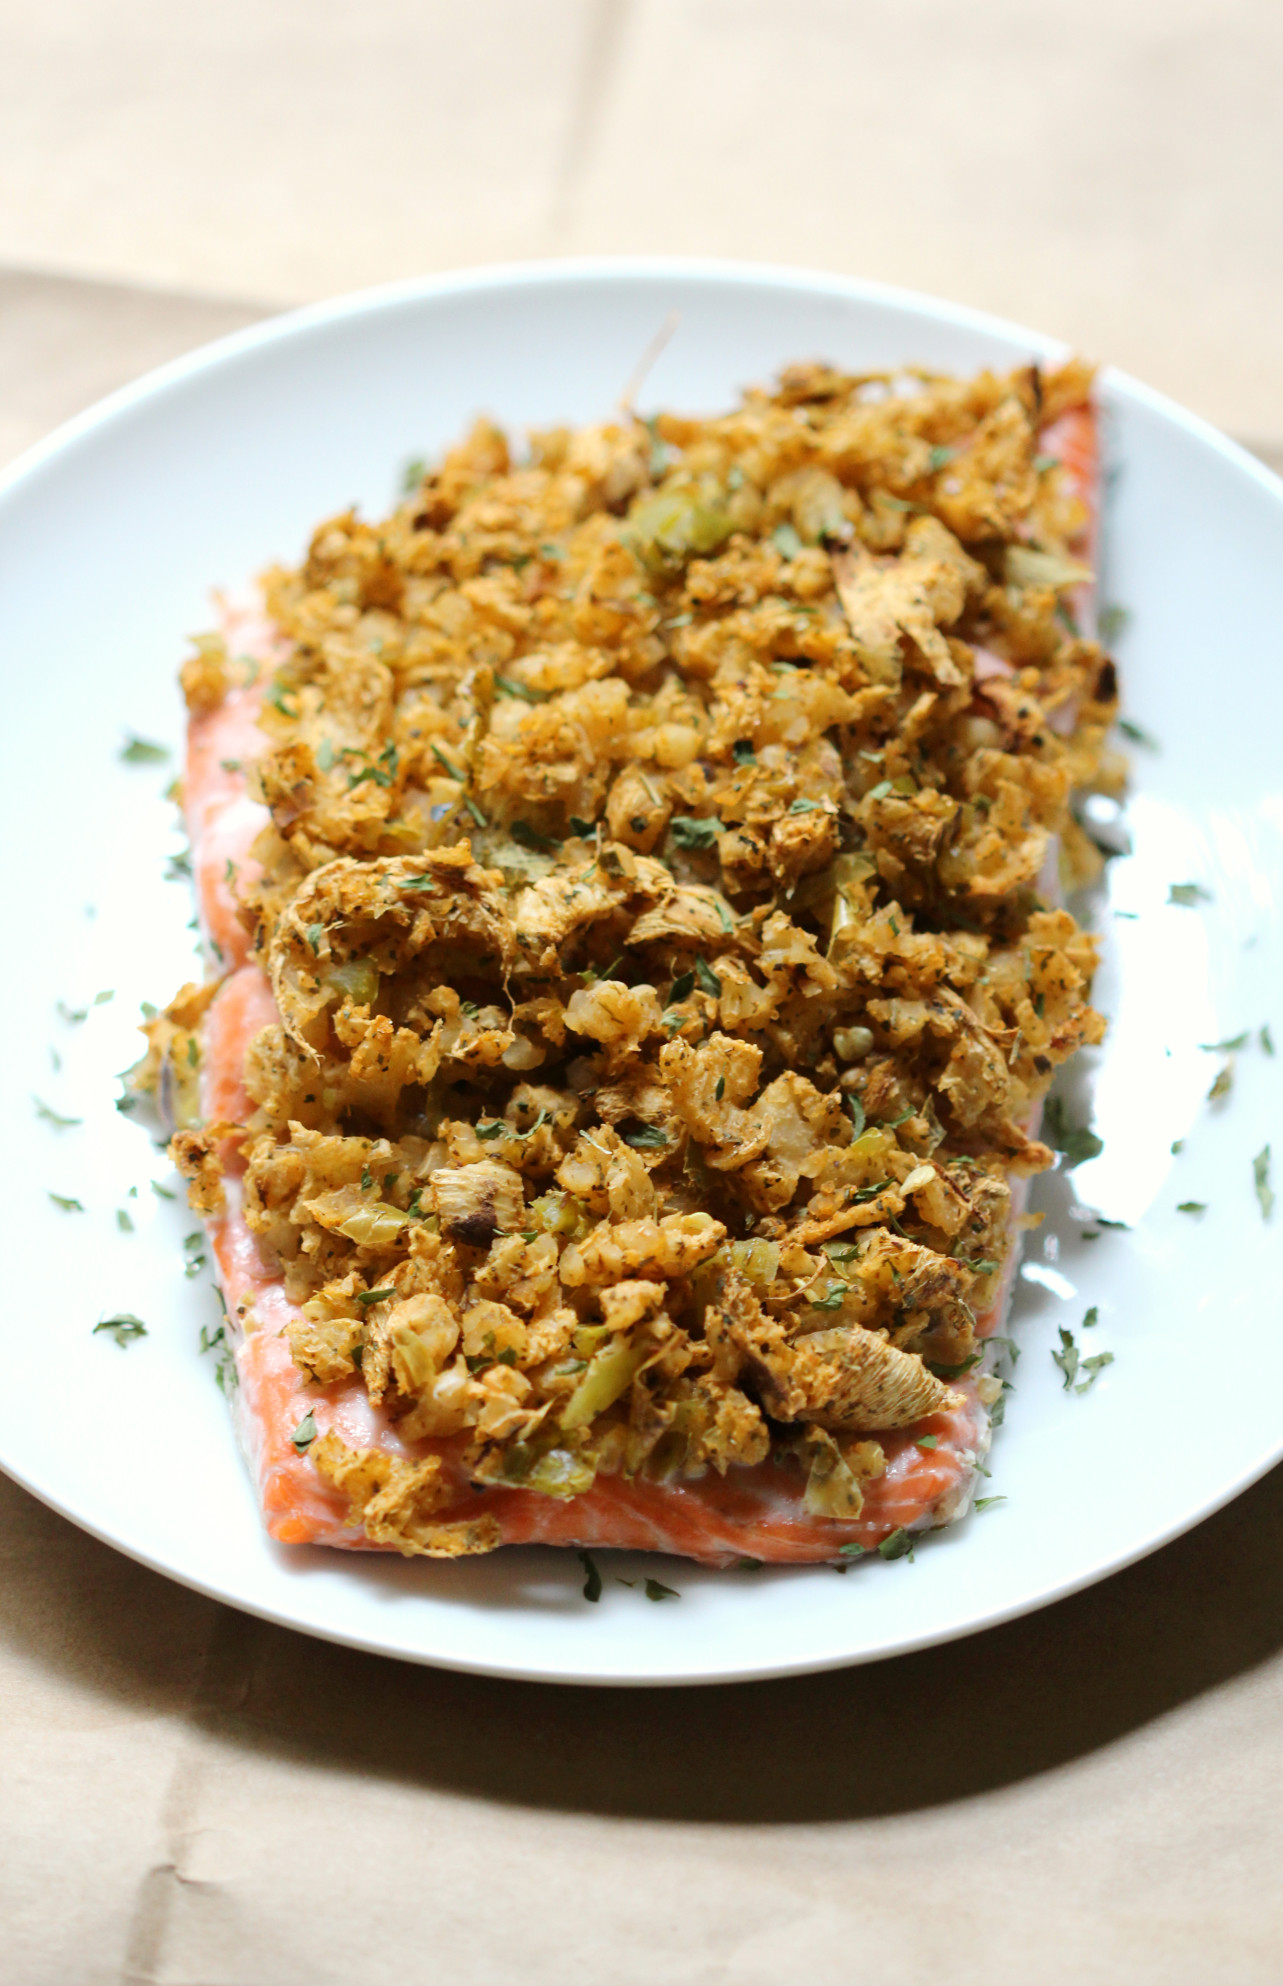 Roasted-Hatch-Chili-Jicima-Salmon-9-e1443368966917